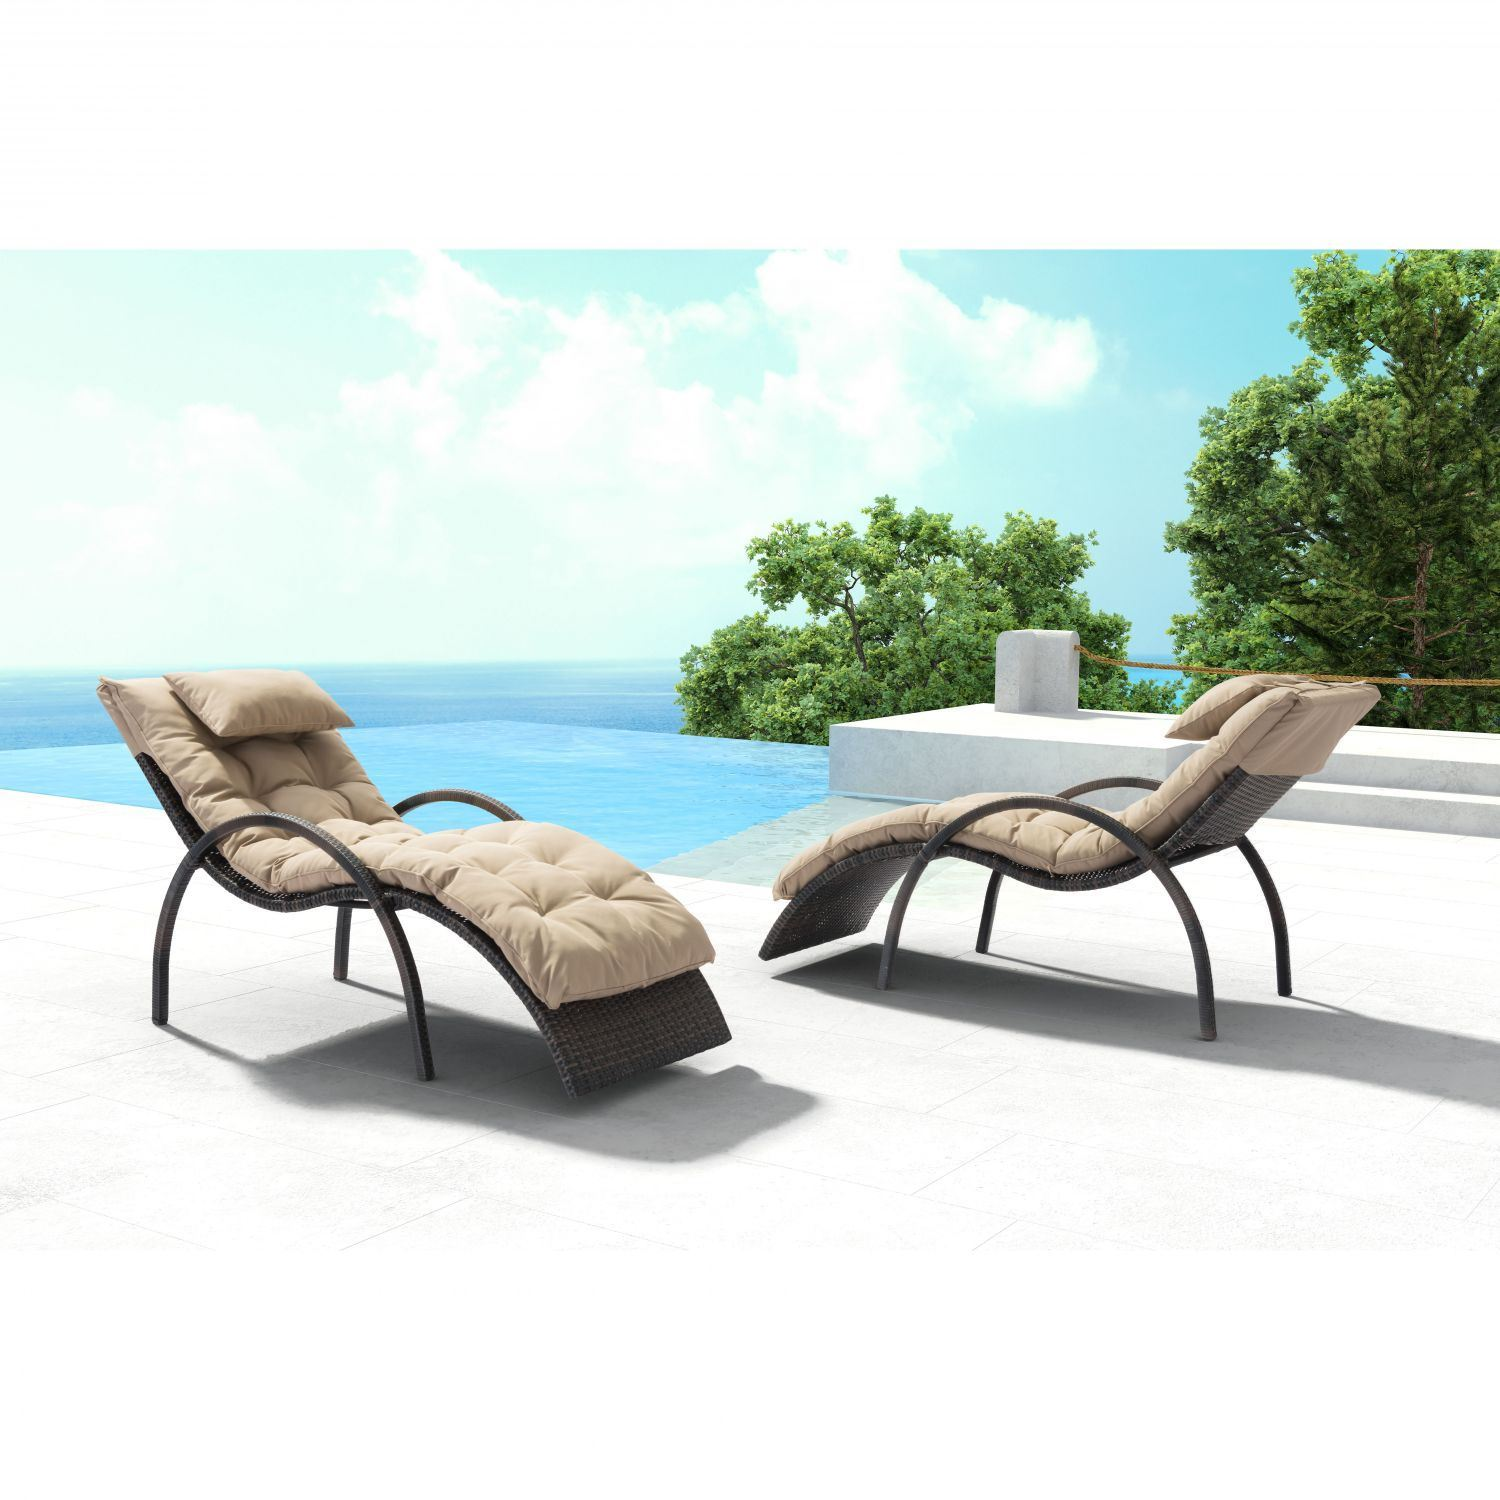 eggertz beach chaise lounge brown beige 703841 zuo ForBeach Chaise Longue